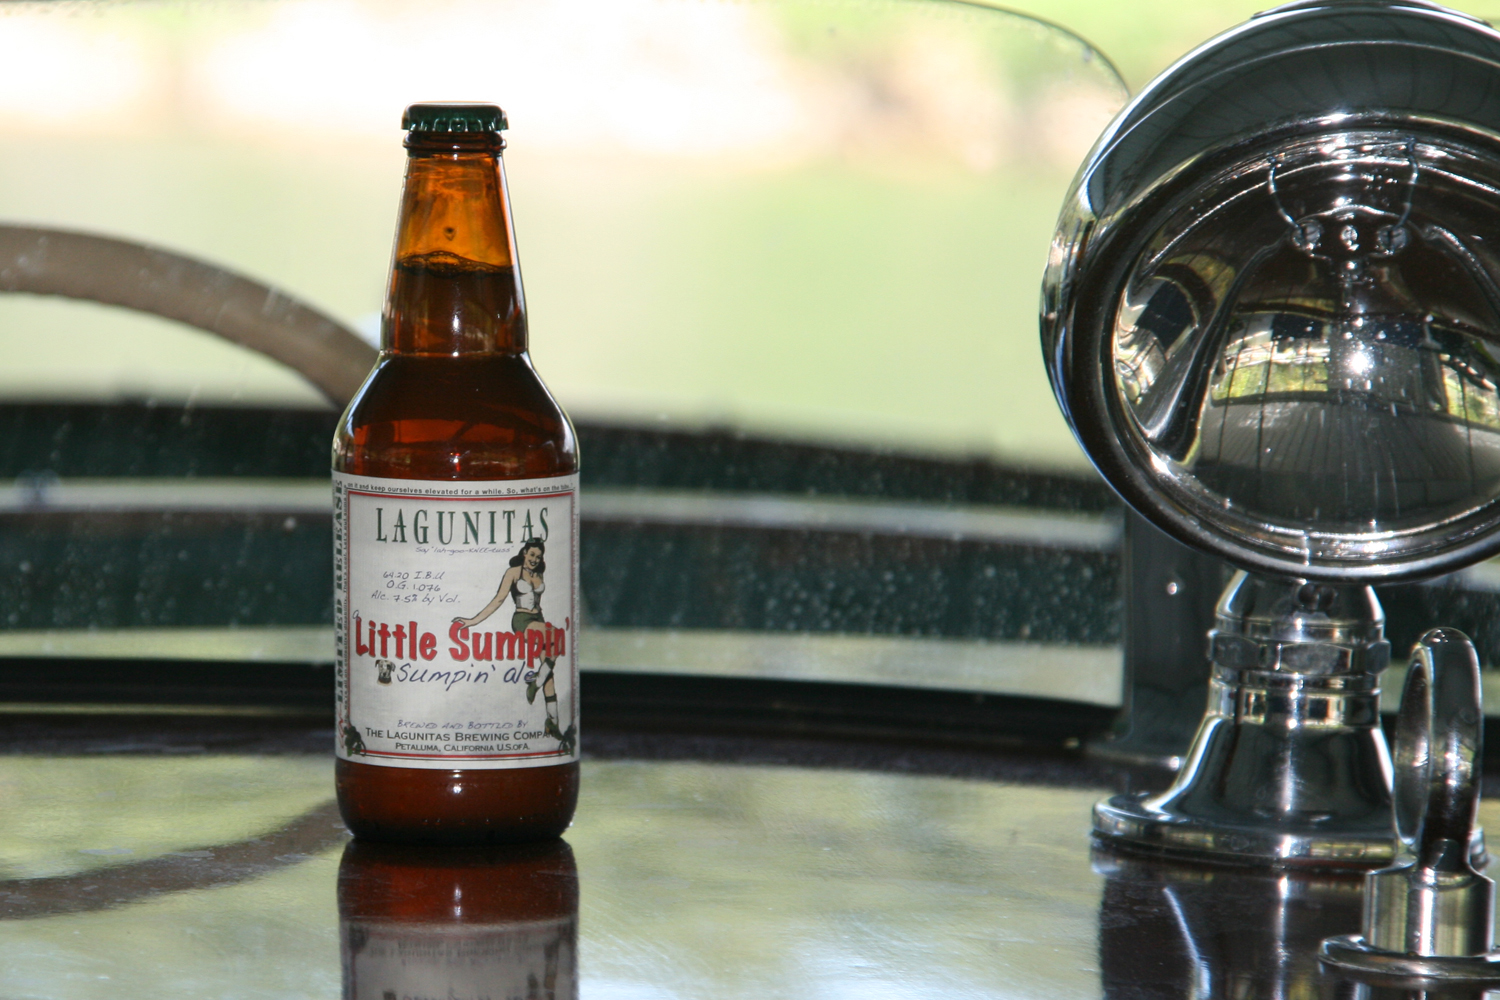 Drink A Little Sumpin' Sumpin' Ale summer party beer this season.